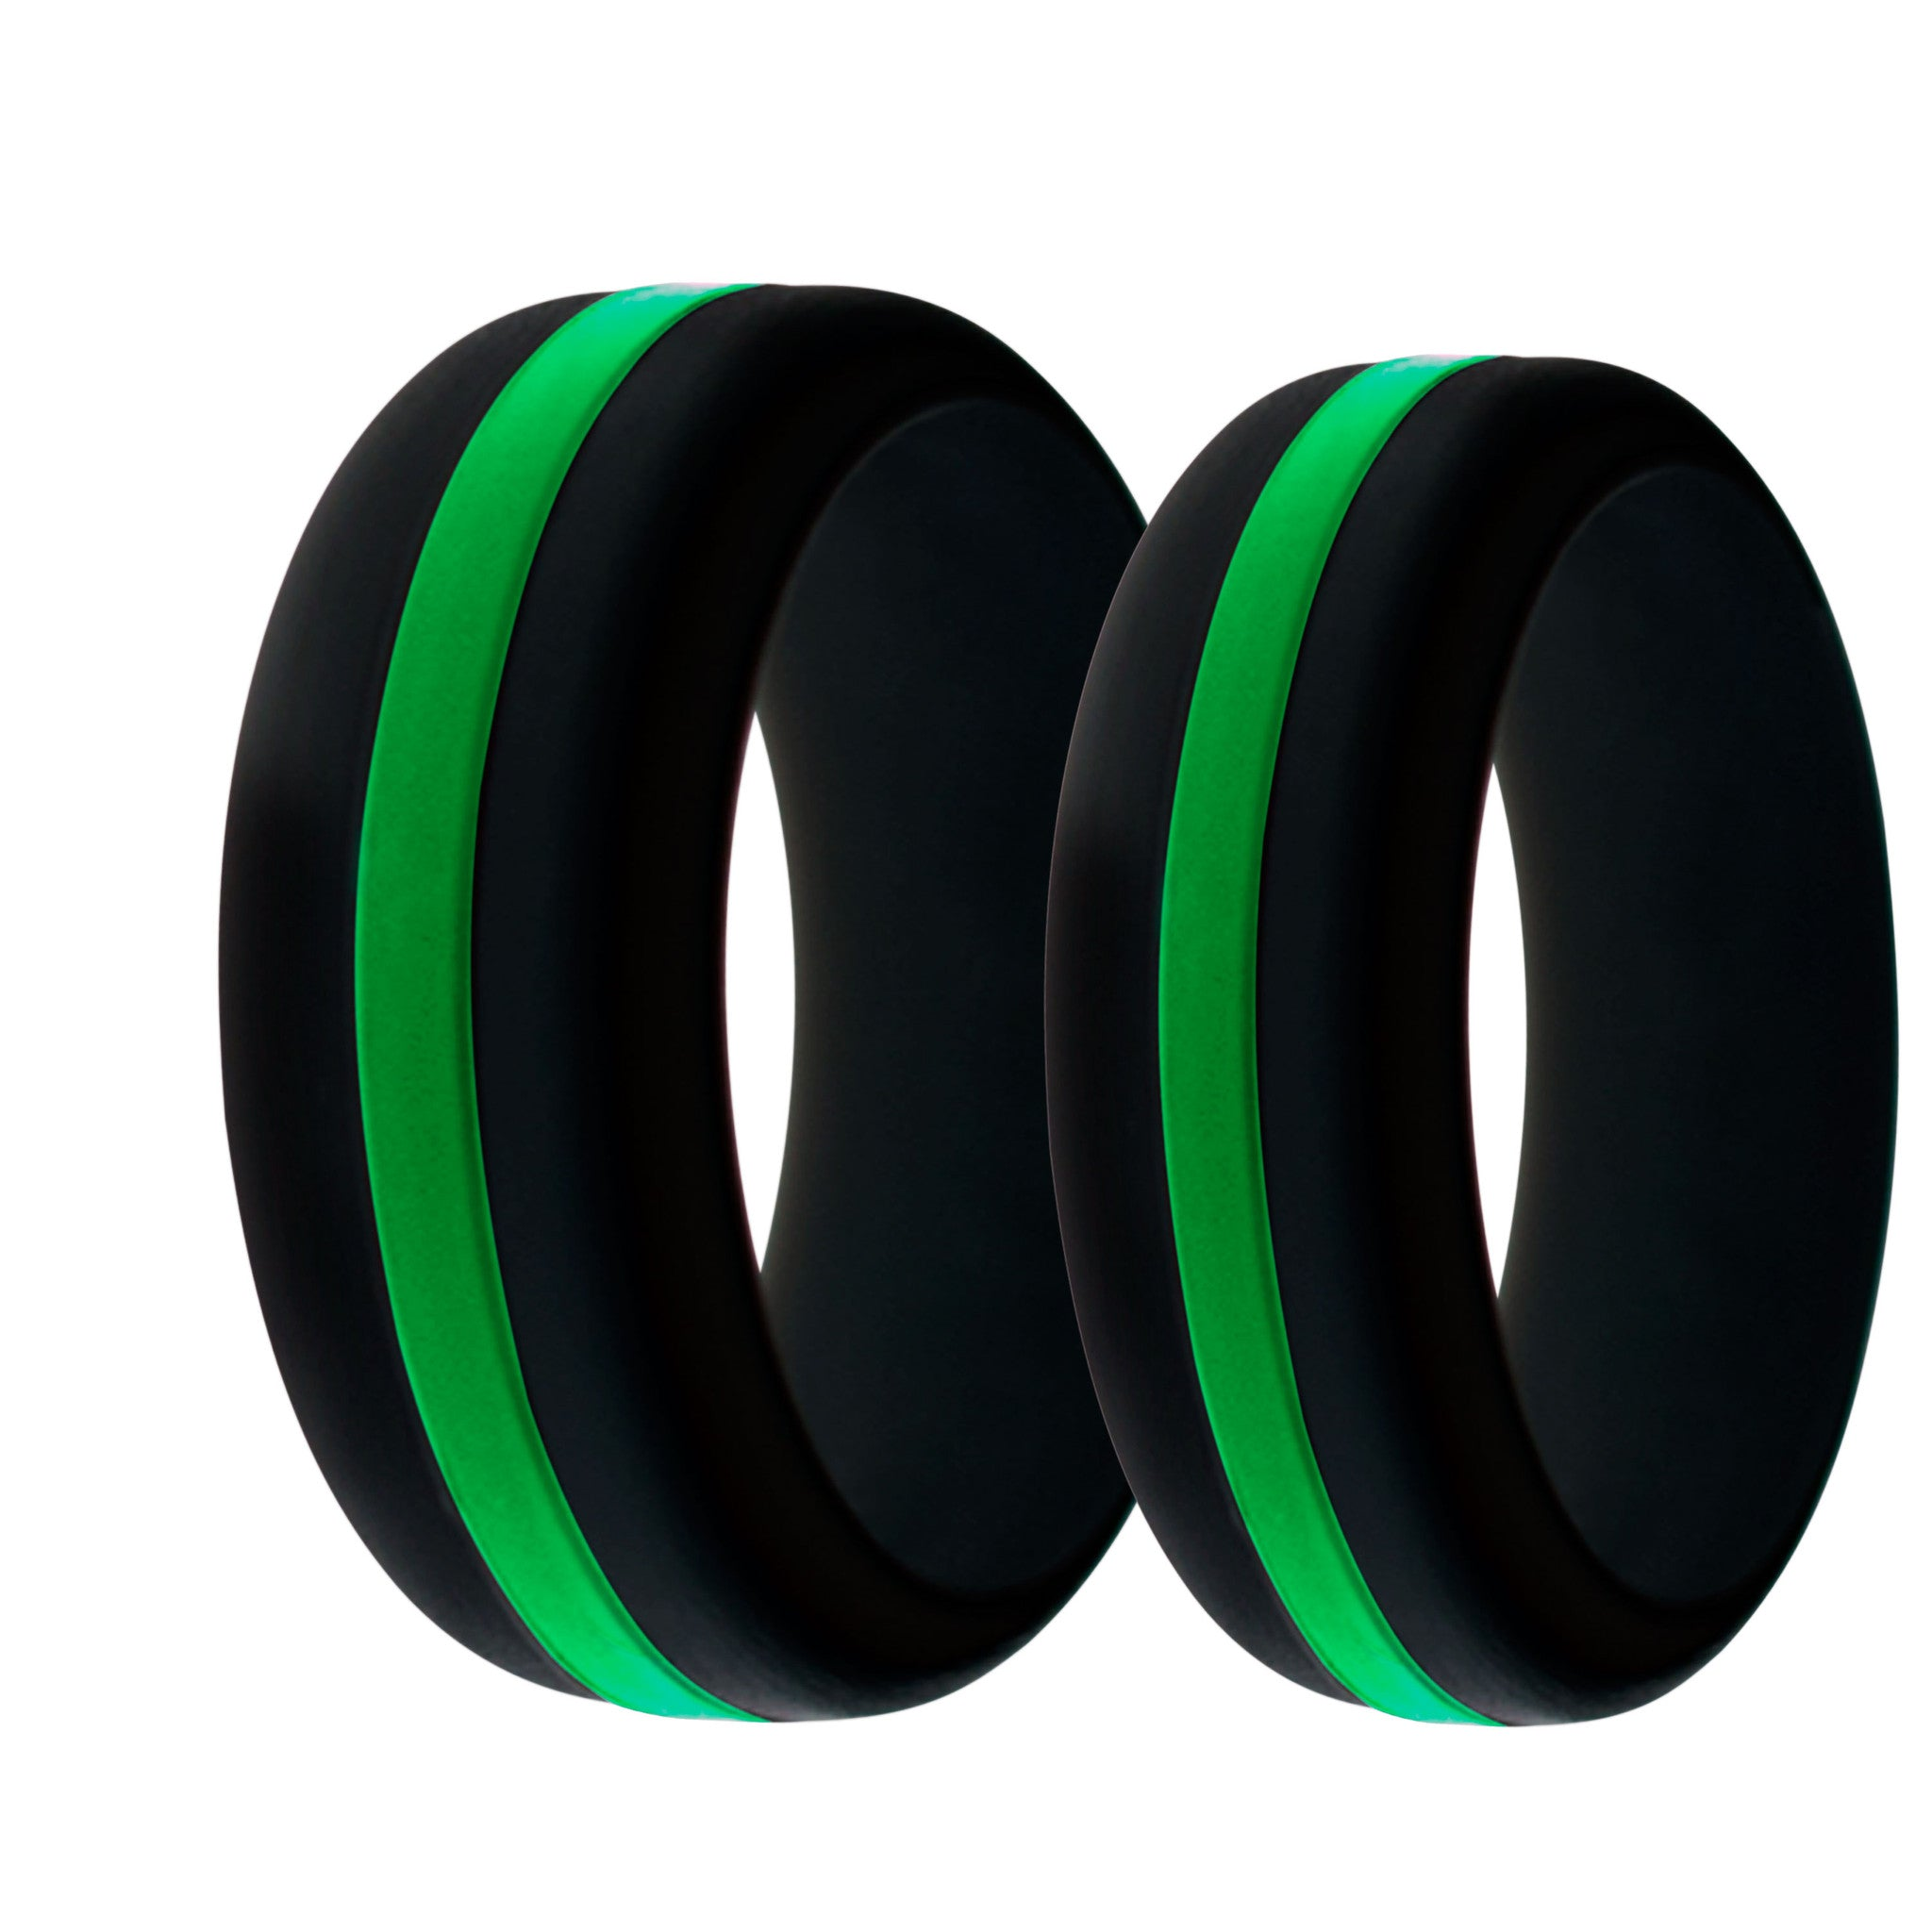 black and brown silicon me ring the movement join rings workingperson green qalo camoflauge